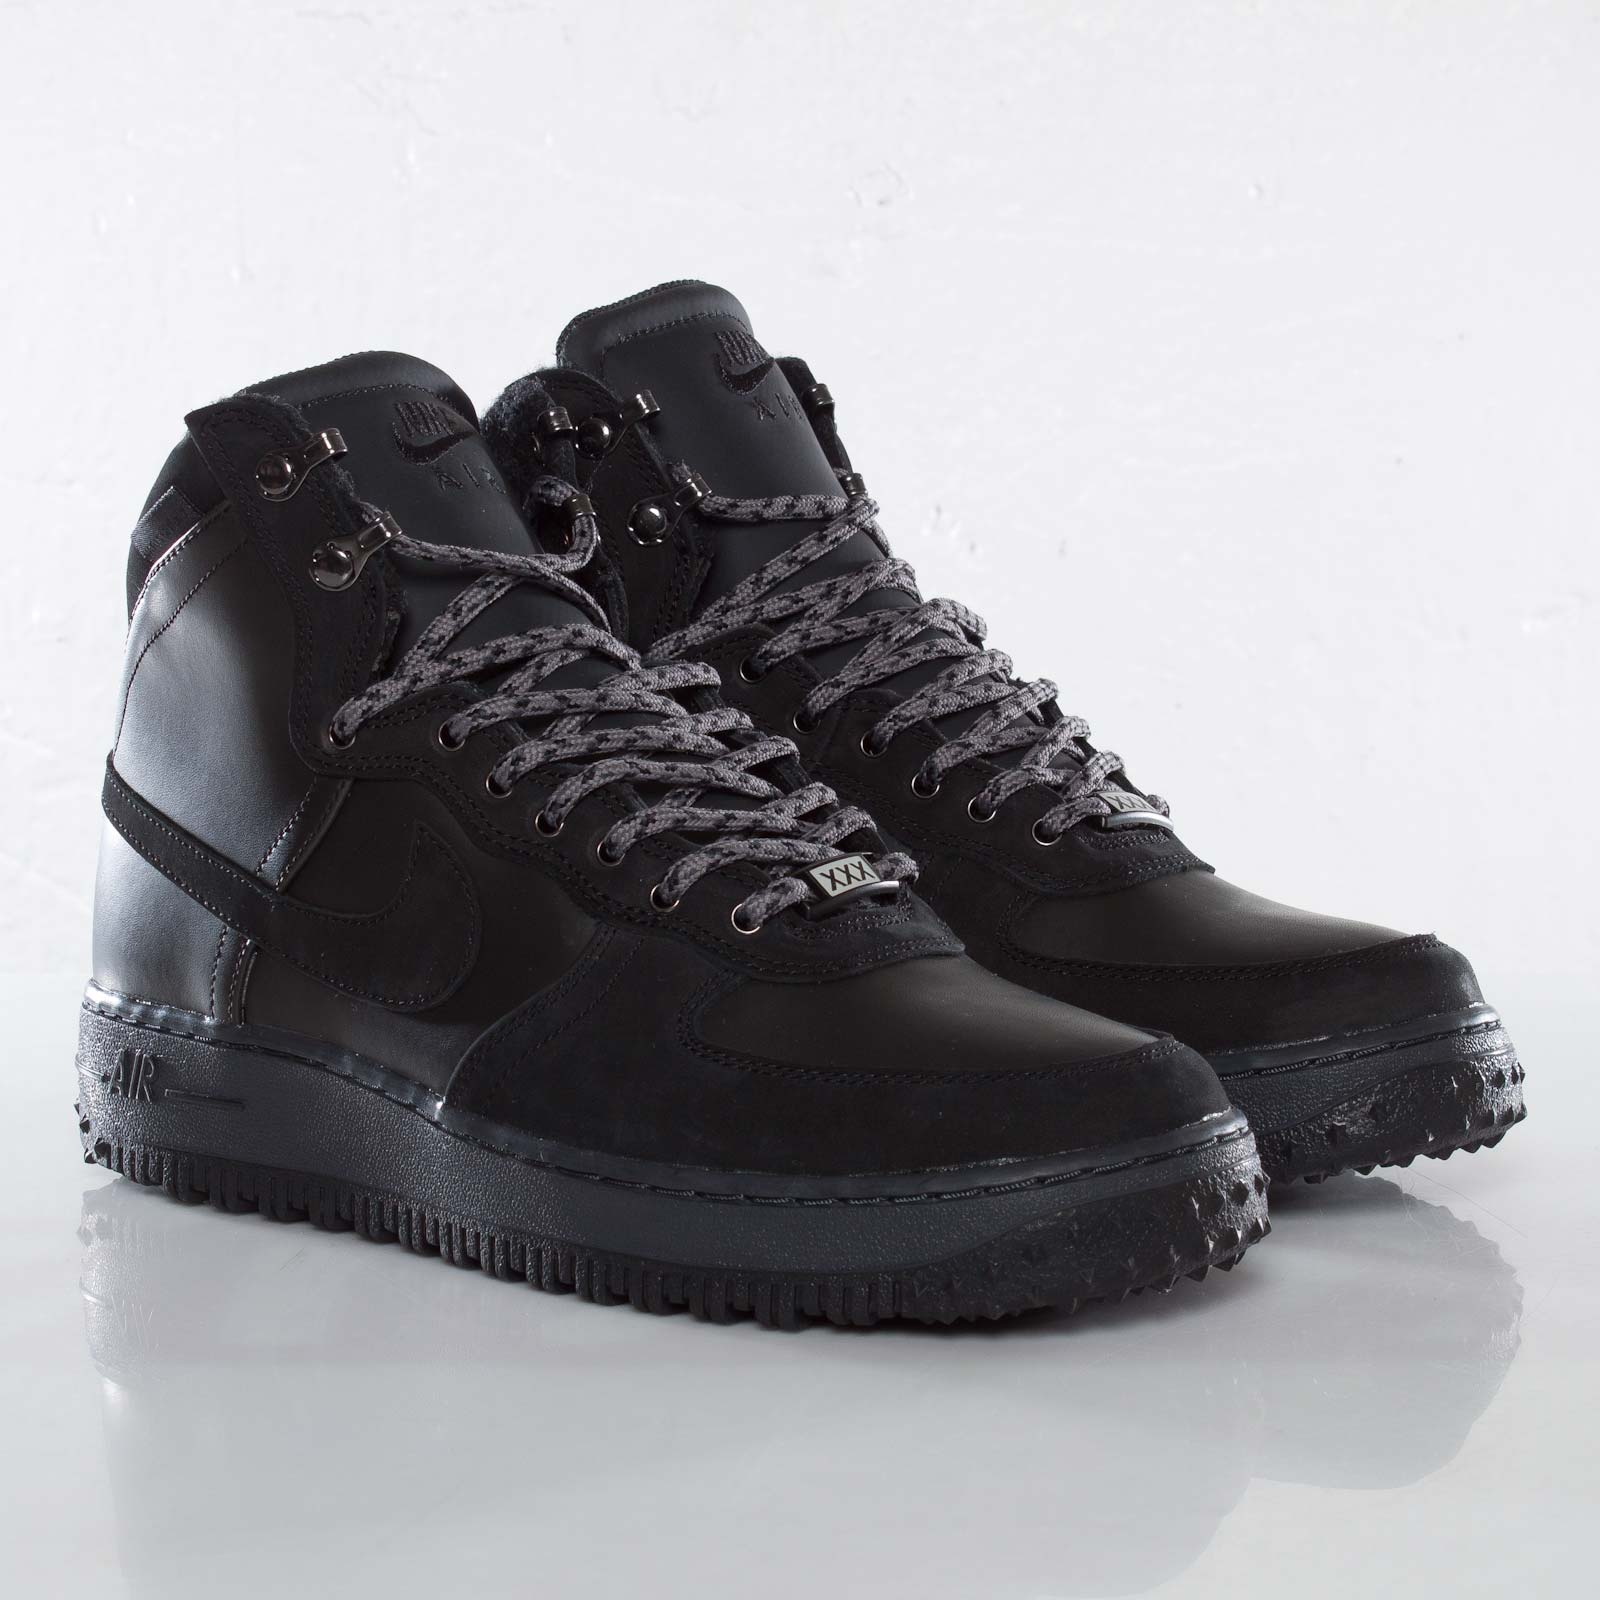 new arrival 67478 1451c Nike Air Force 1 Deconstruct MB QS